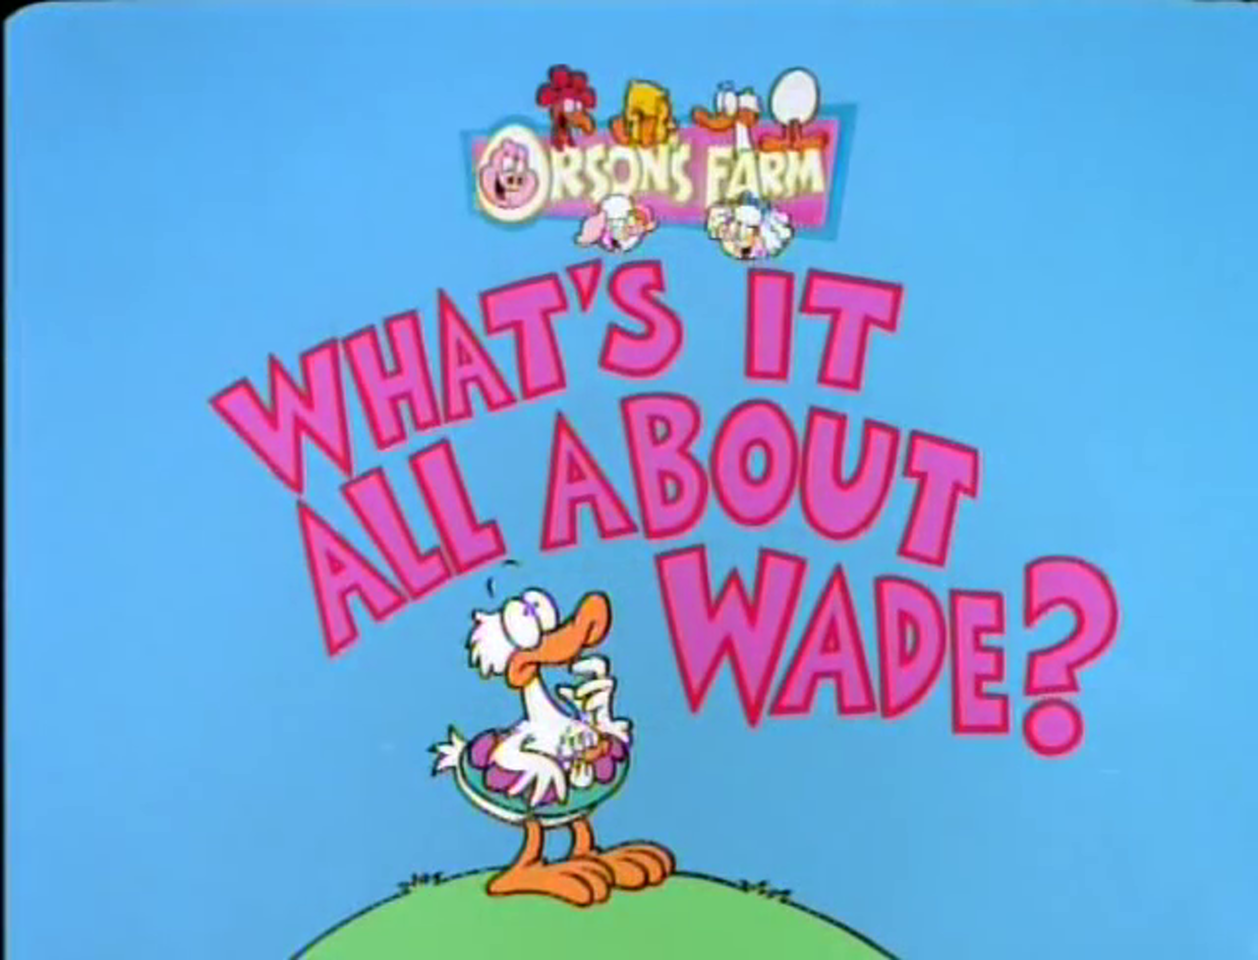 What's It All About, Wade?